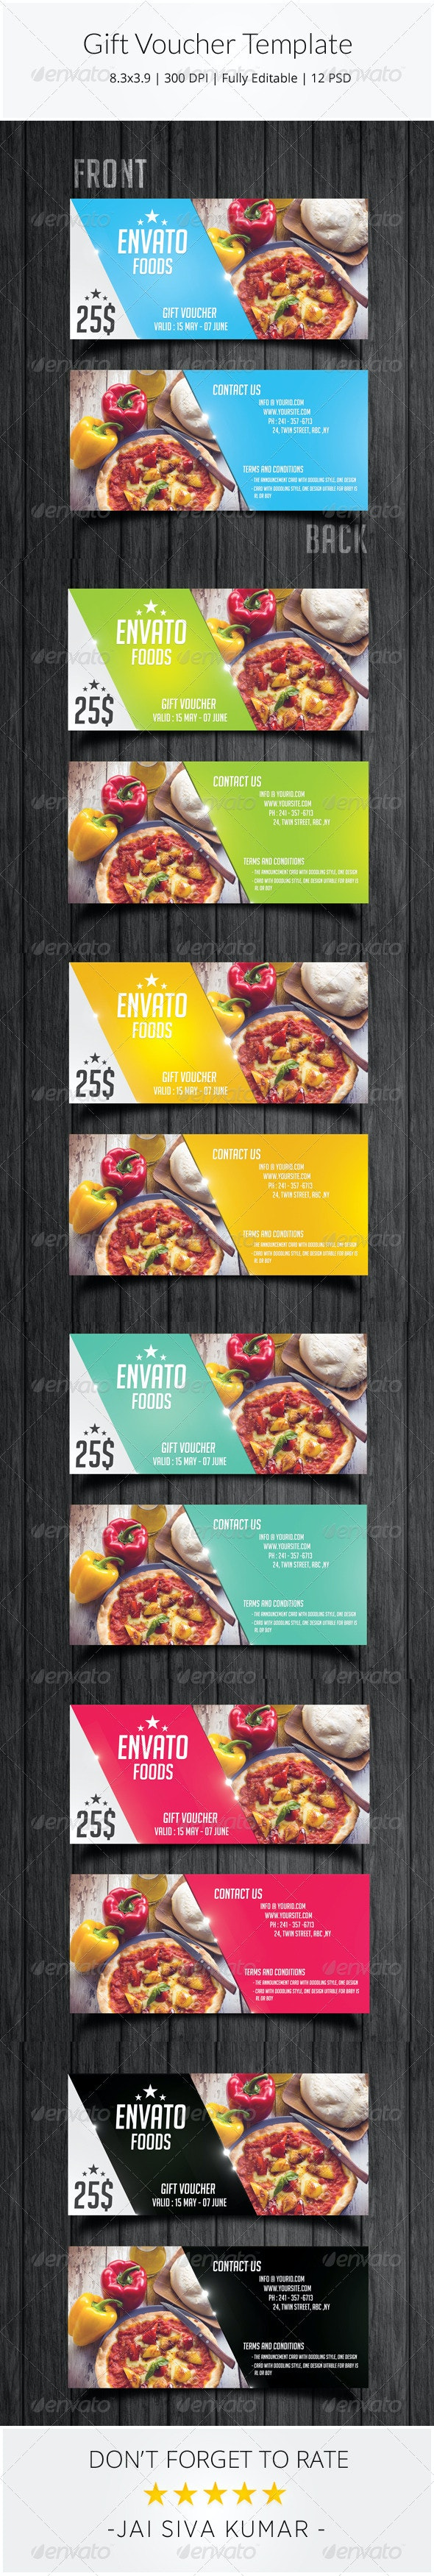 Gift Voucher Template - Loyalty Cards Cards & Invites